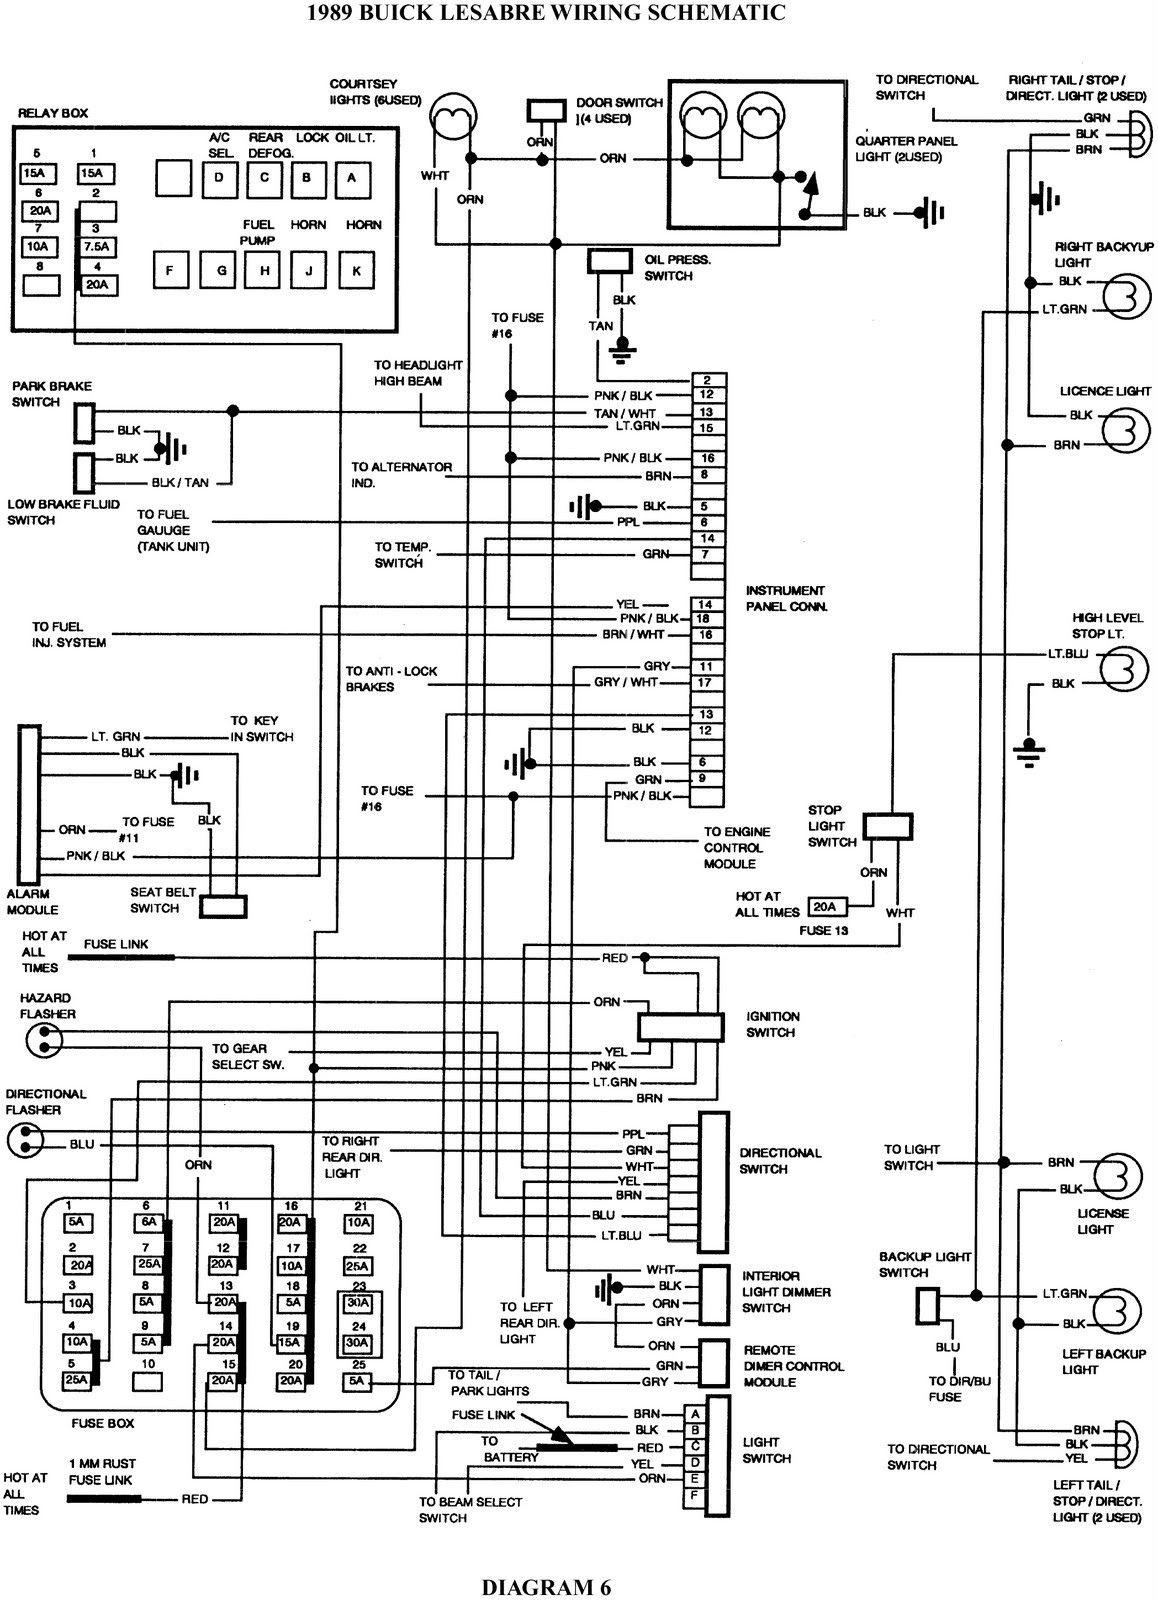 Buick Lesabre Blower Motor Wiring Diagram